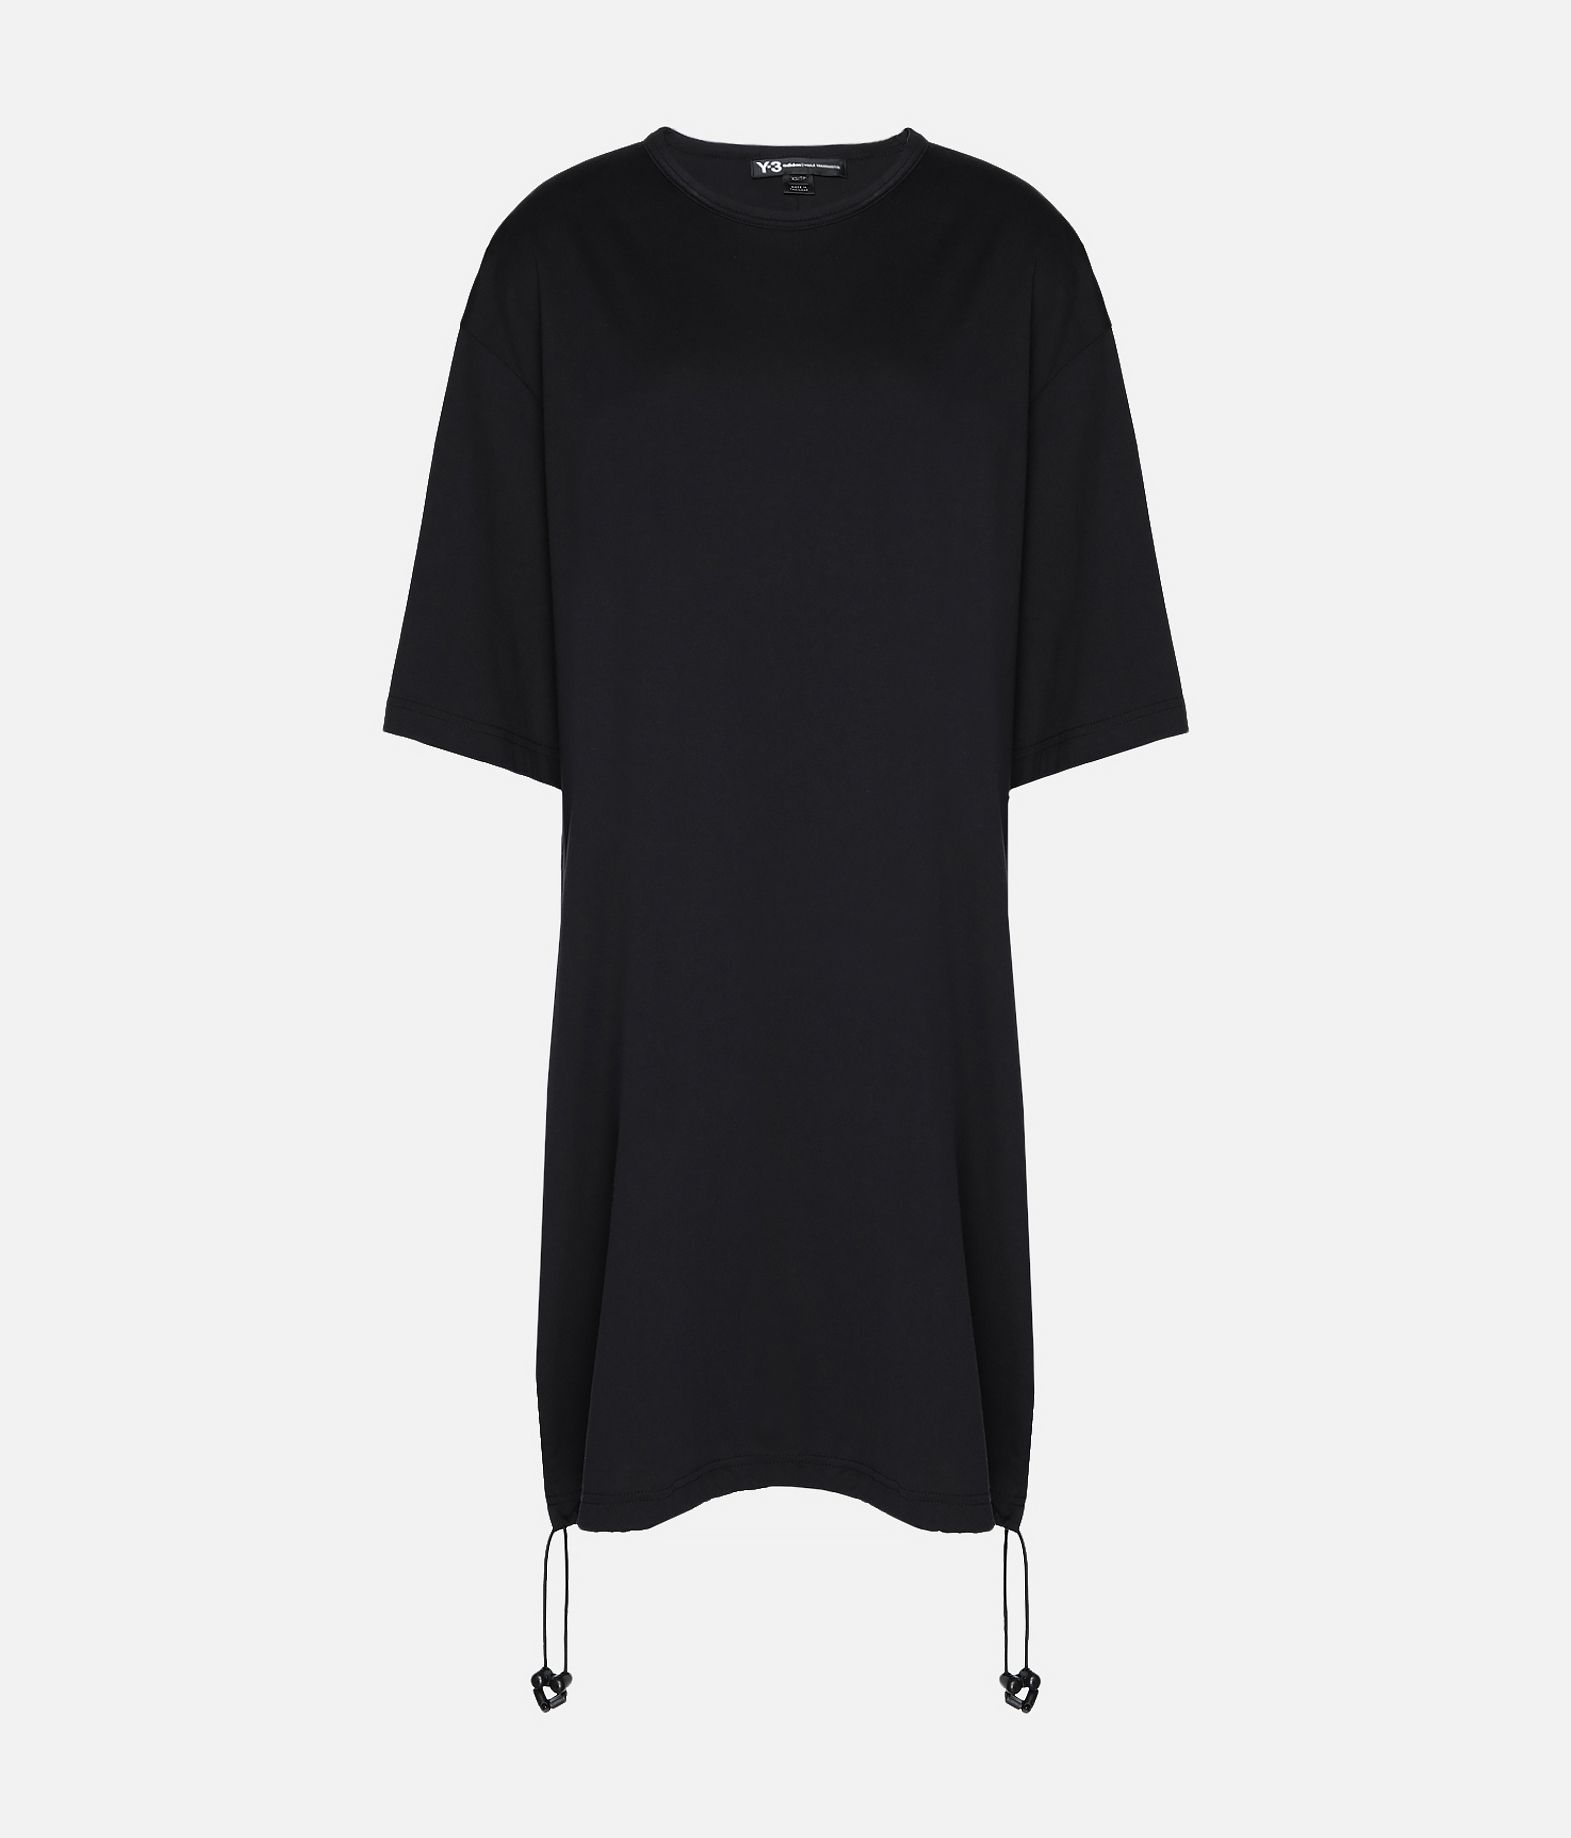 Y-3 Y-3 Drawstring Long Tee Kurzärmliges T-shirt Damen f